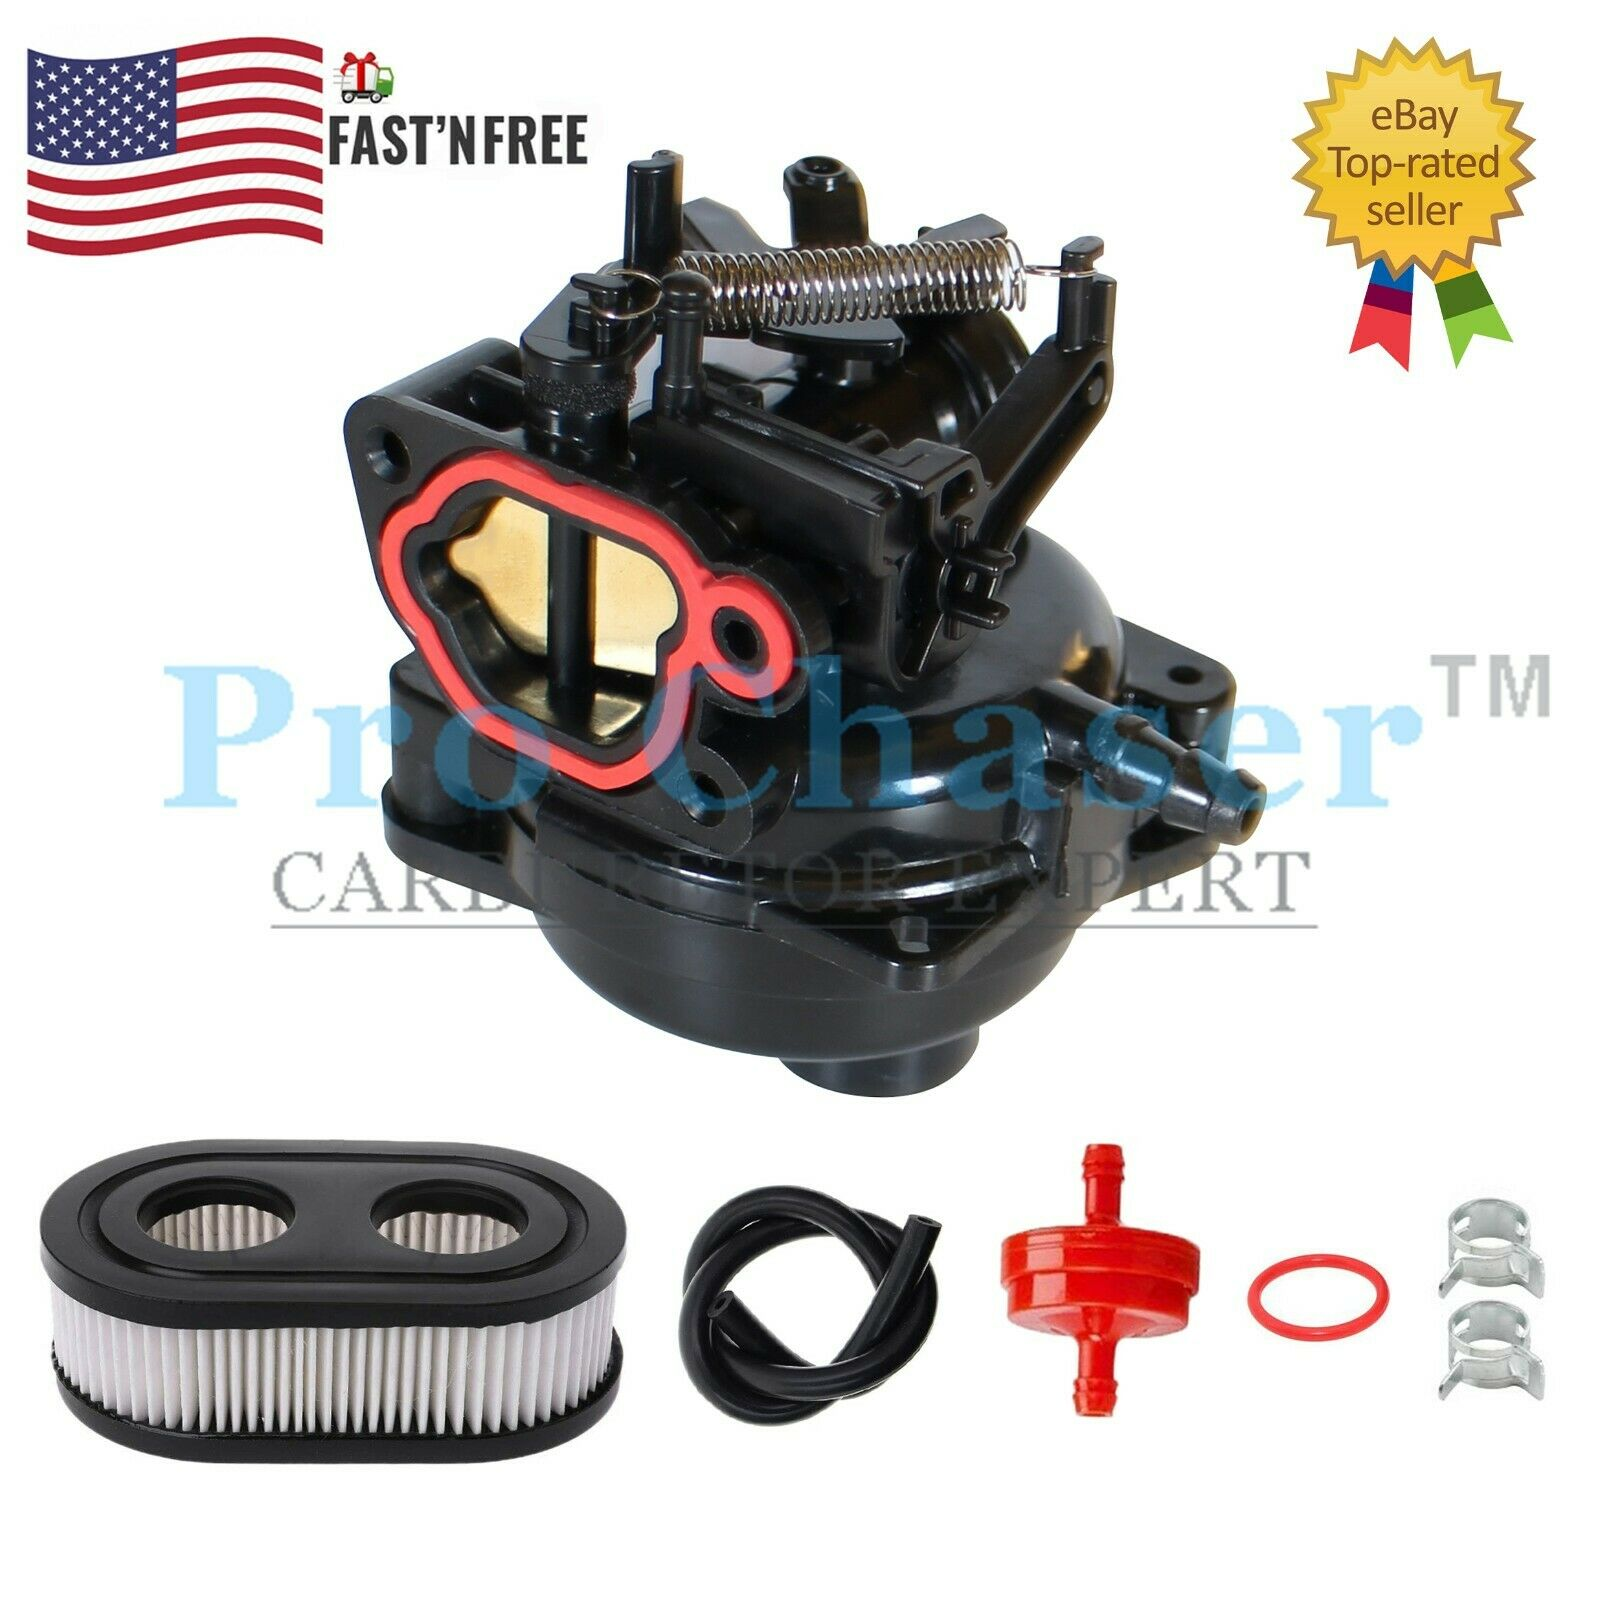 Carburetor Kit For Craftsman Model 247.377051 247377051 Lawn